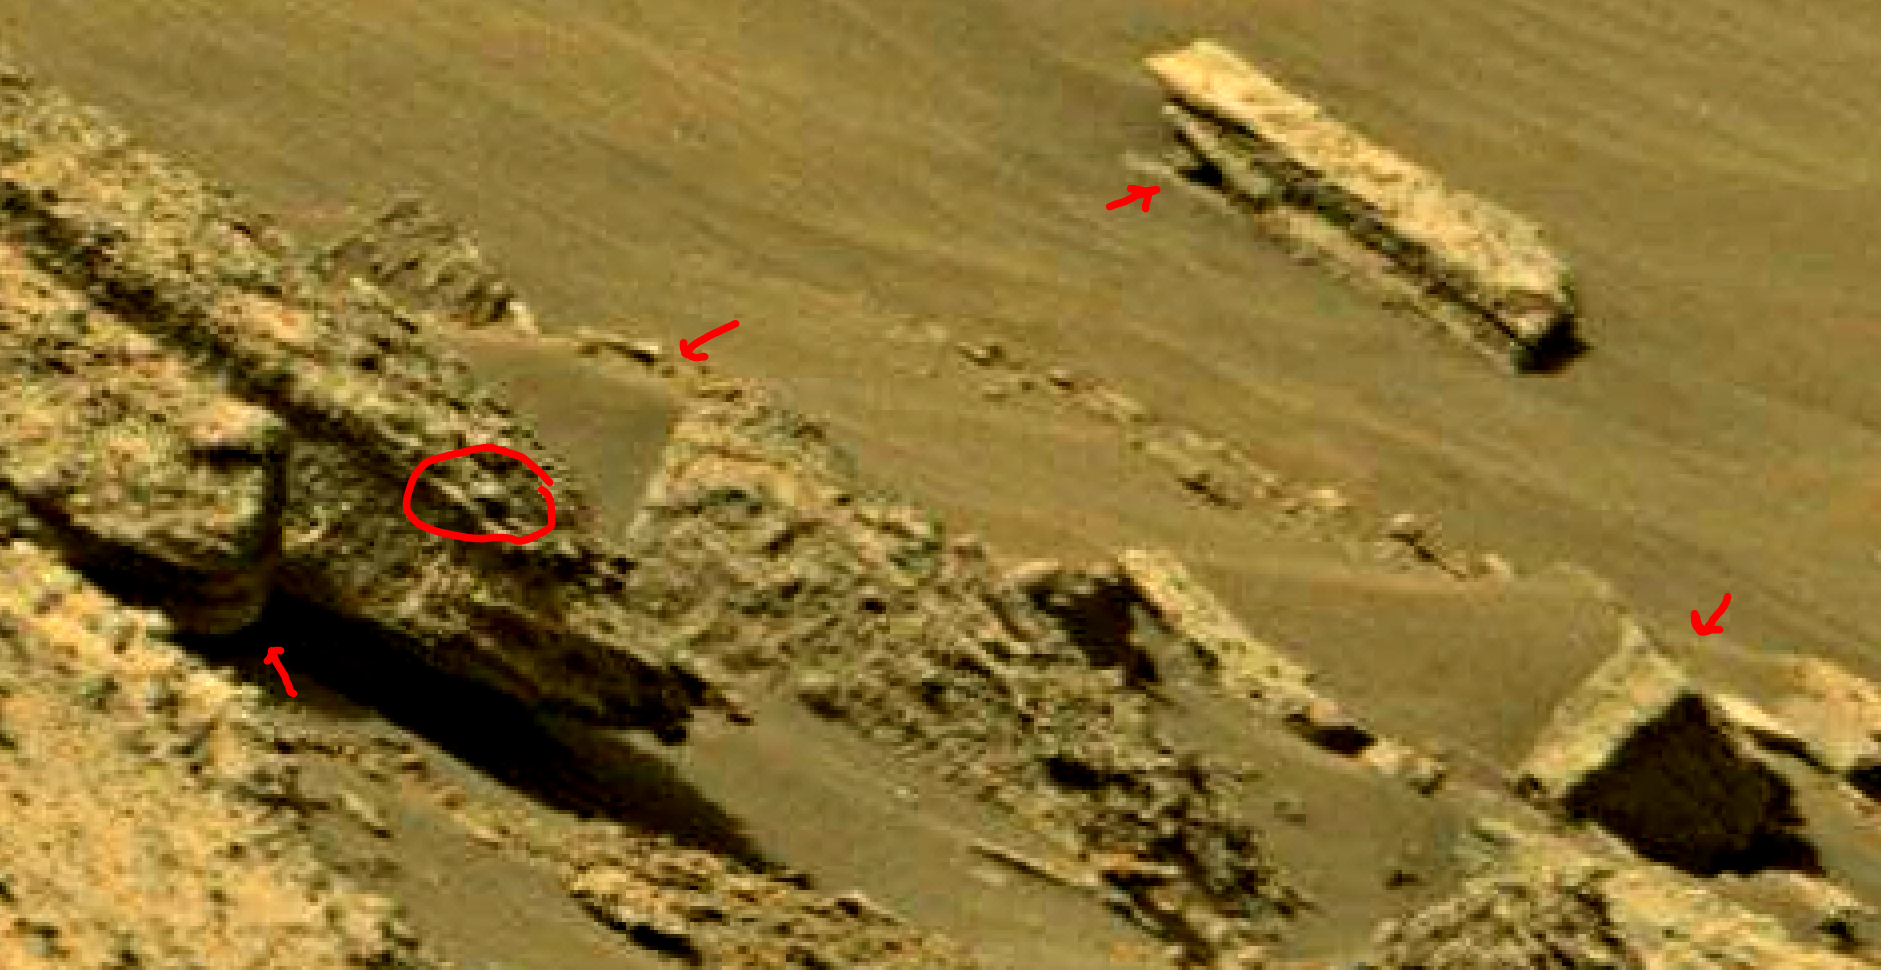 mars-sol-1467-anomaly-artifacts-9-was-life-on-mars